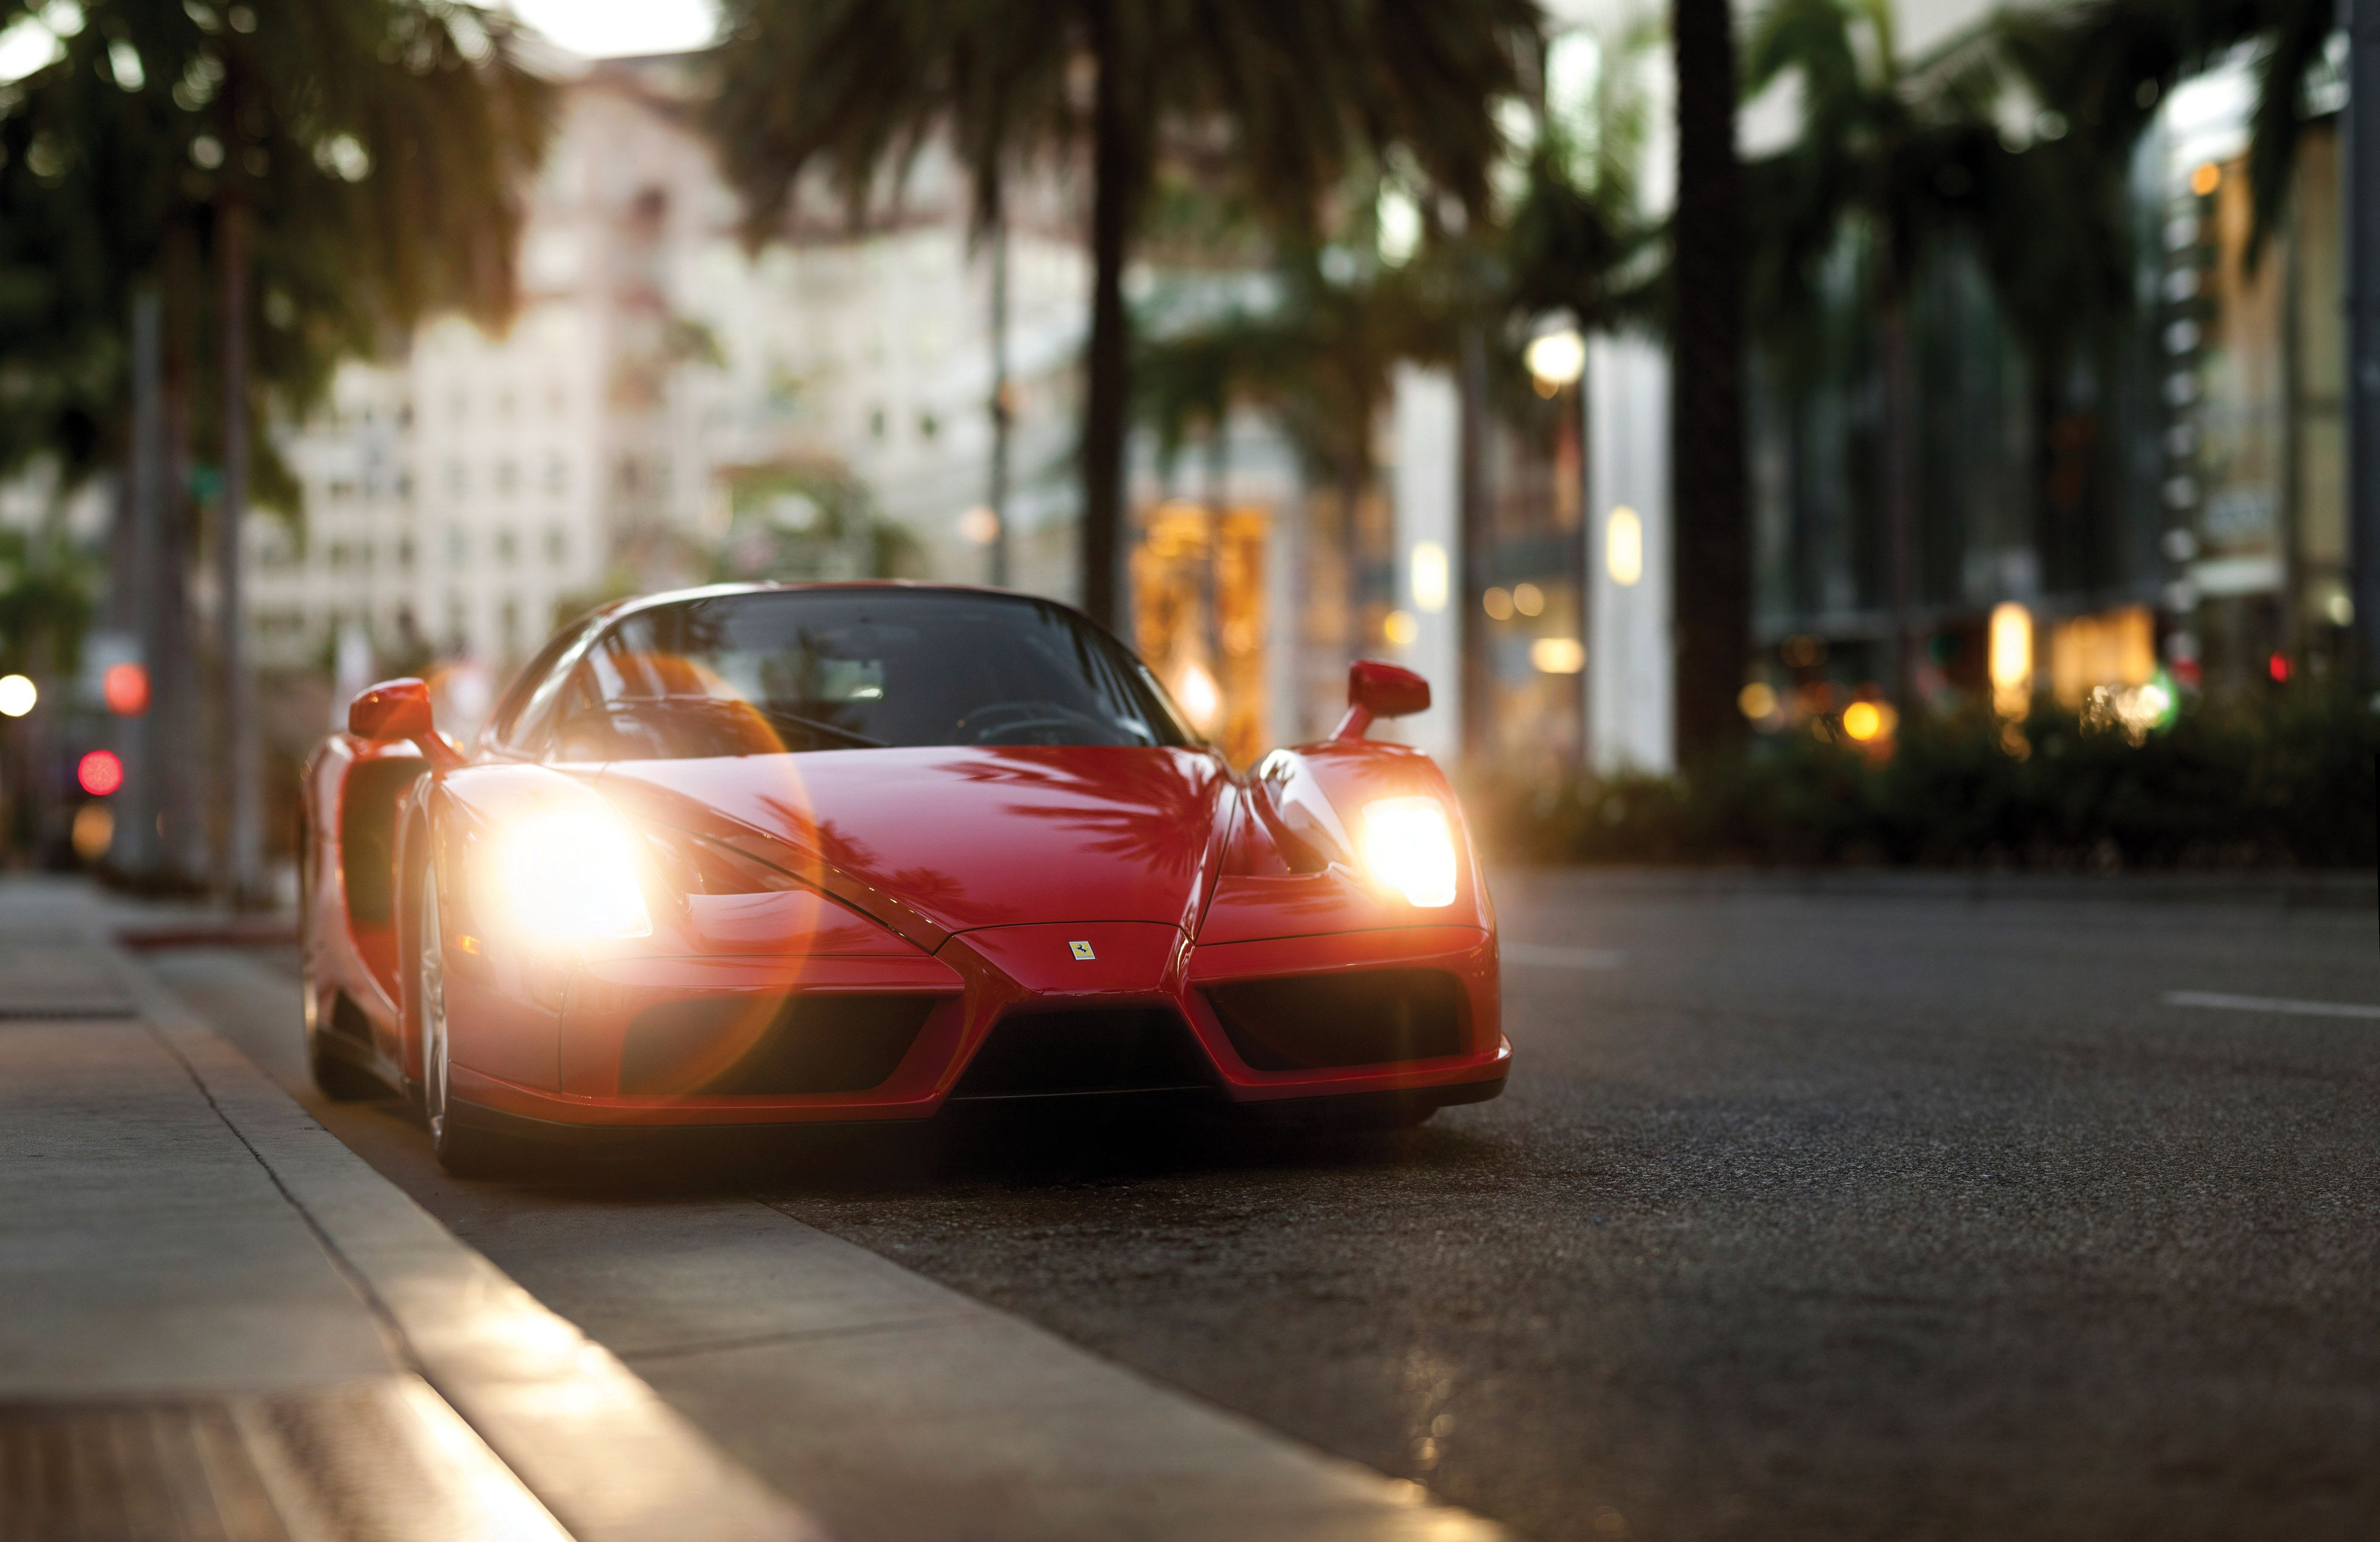 Tour Rm Sotheby S Beautiful Cars Set To Break Auction Records In New York City Sports Car Wallpaper Ferrari Enzo Car Wallpapers